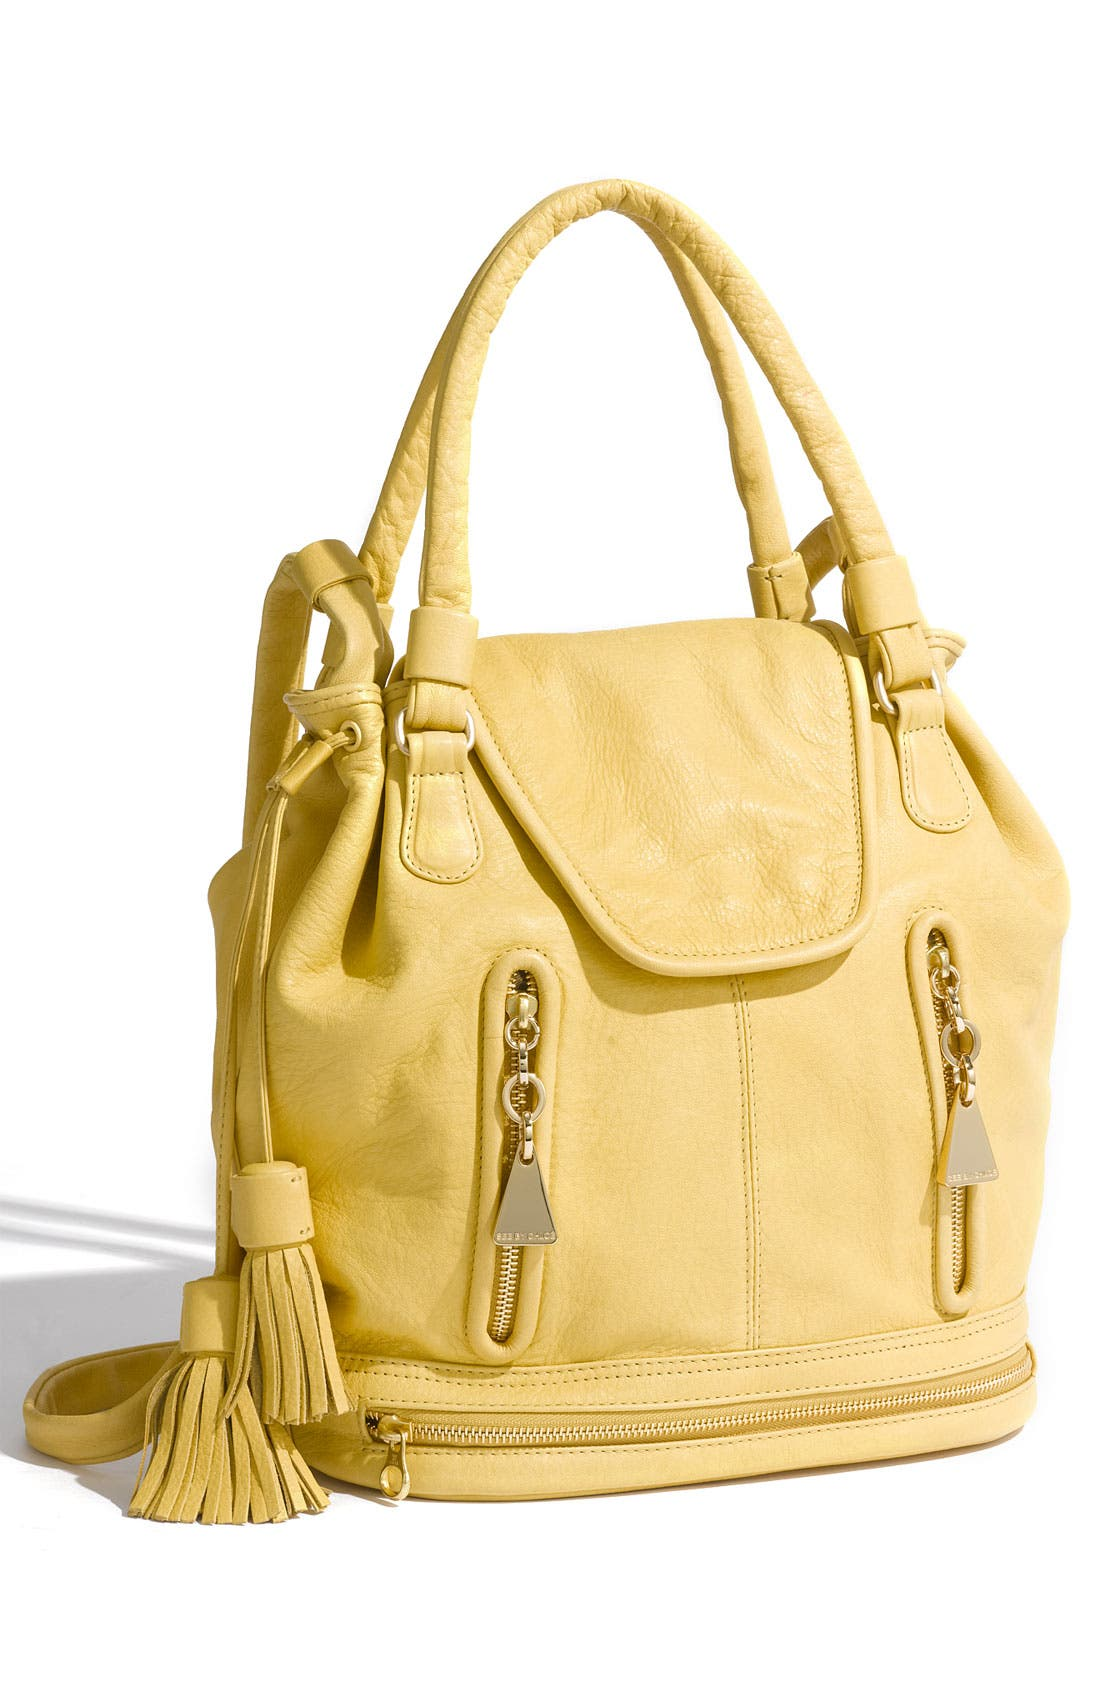 Alternate Image 1 Selected - See By Chloé 'Cherry' Convertible Crossbody Satchel